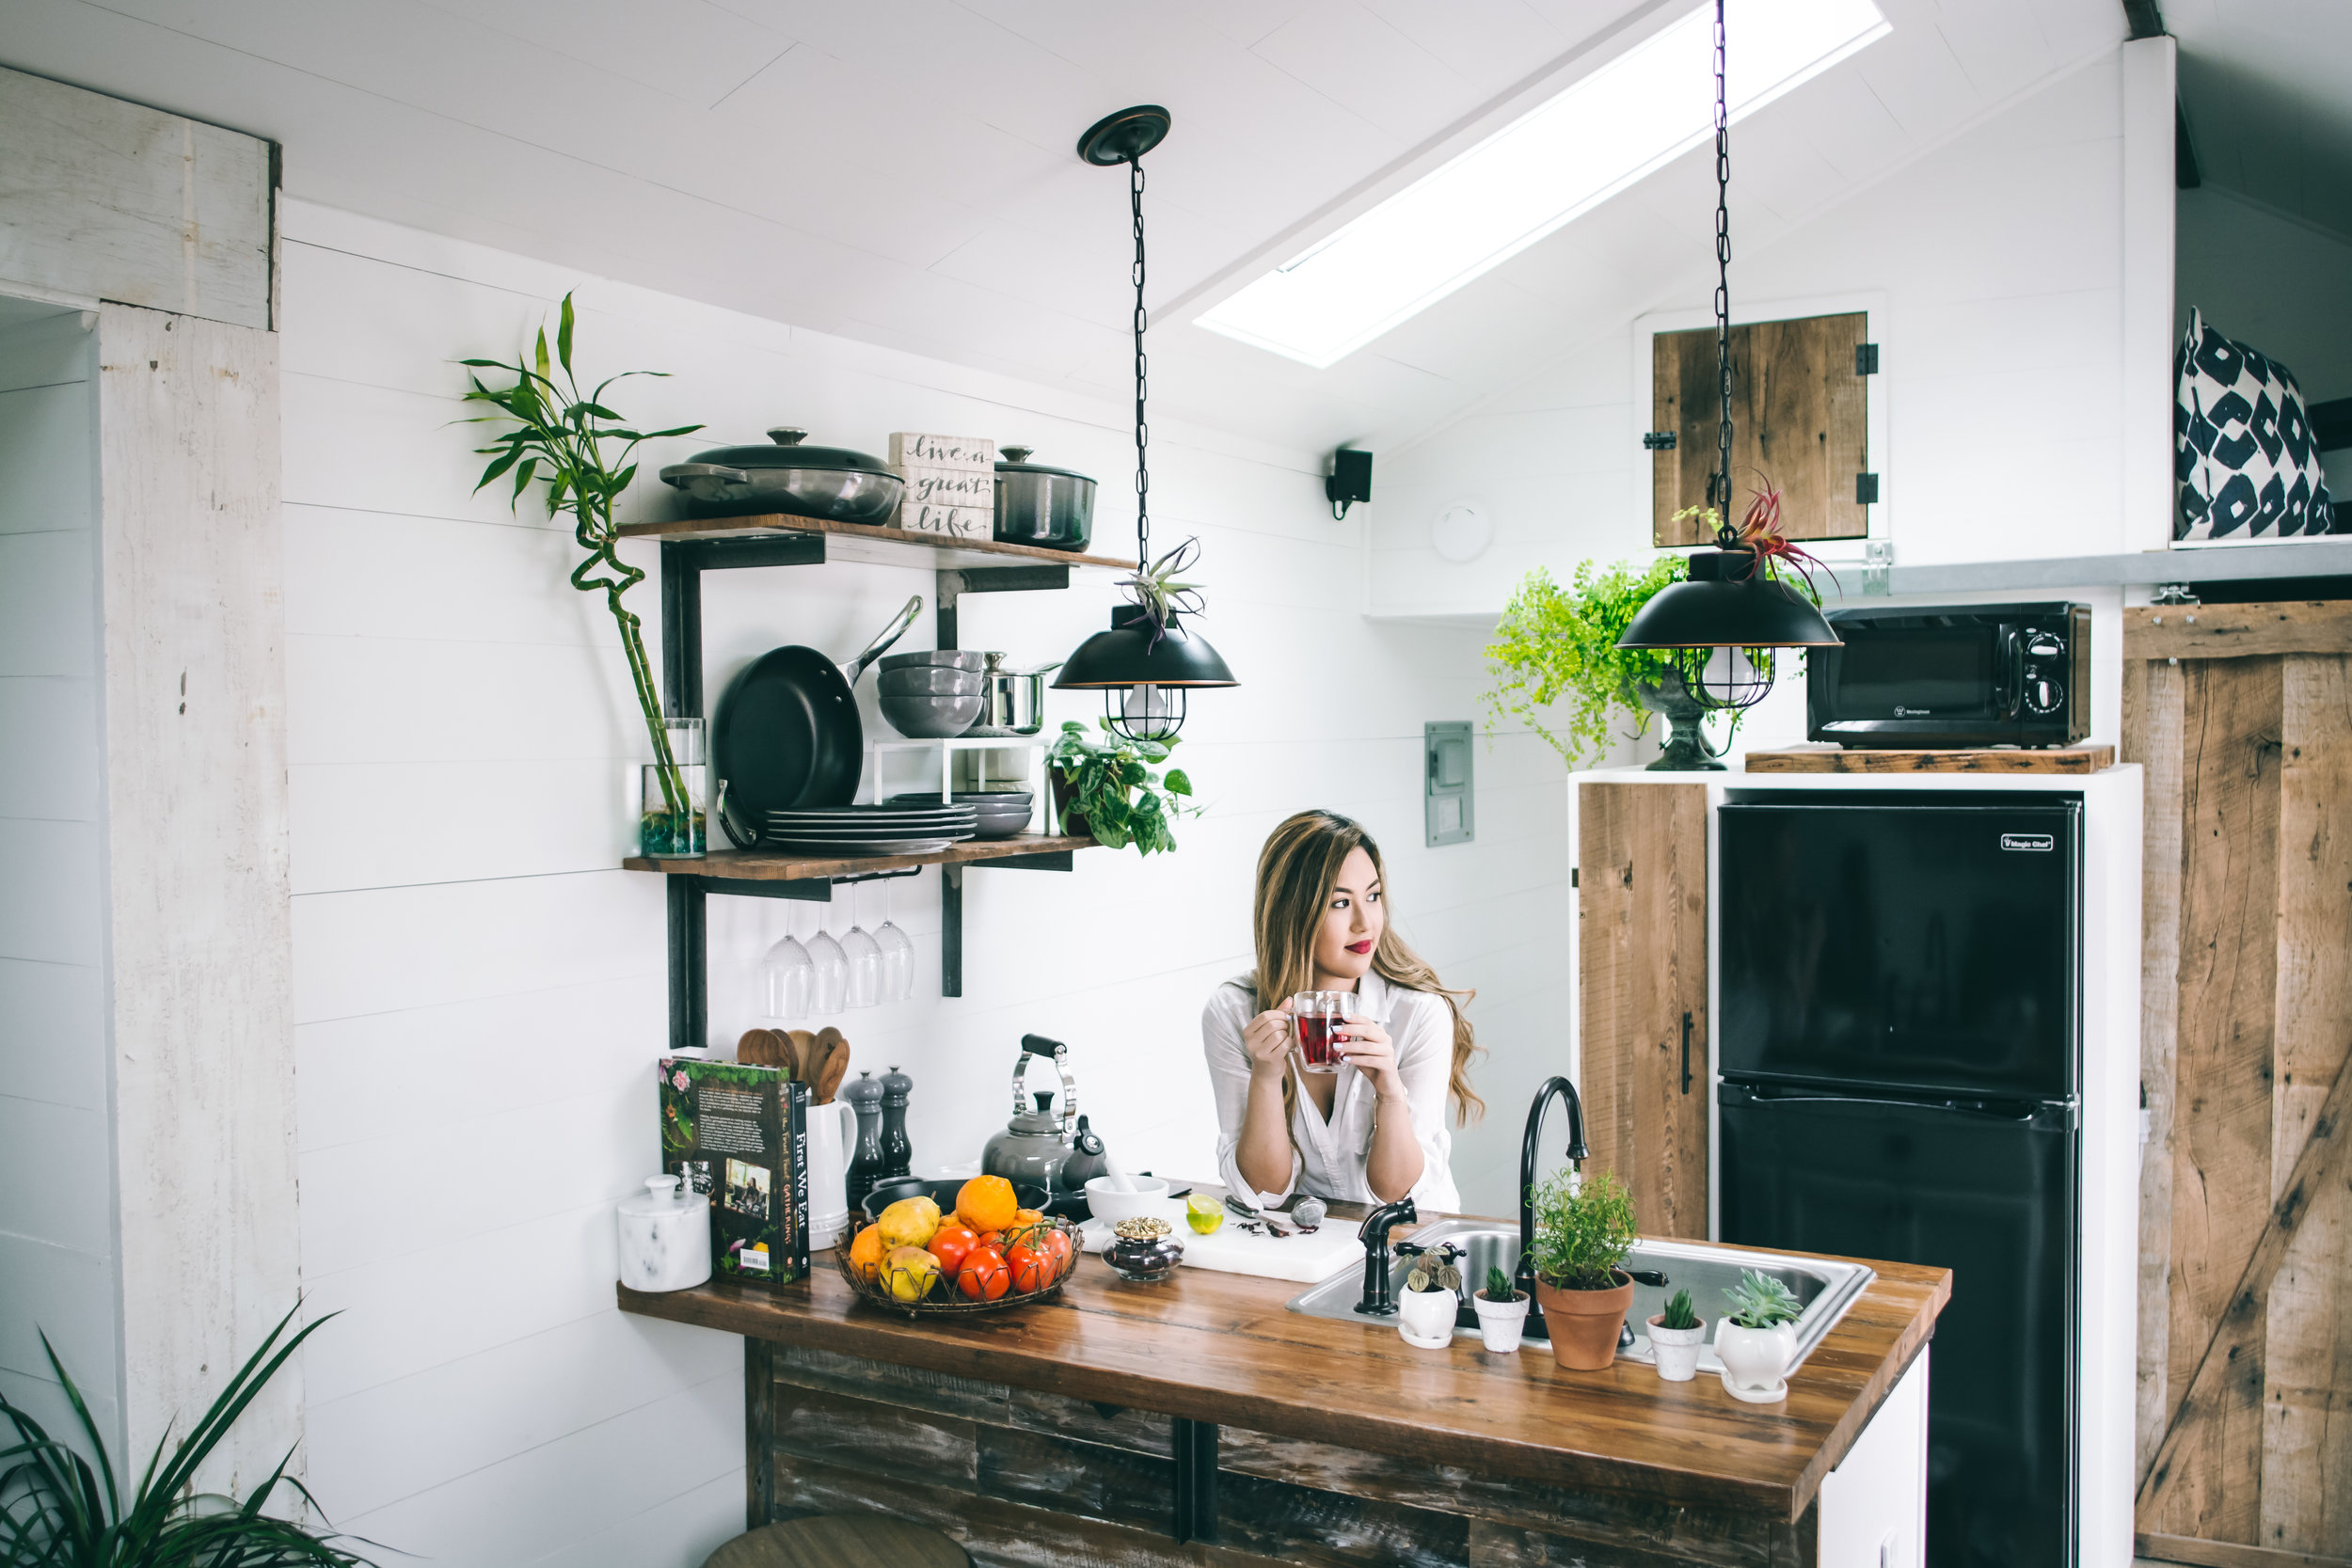 8 Easy Steps to Working a Day Job and a Side Hustle